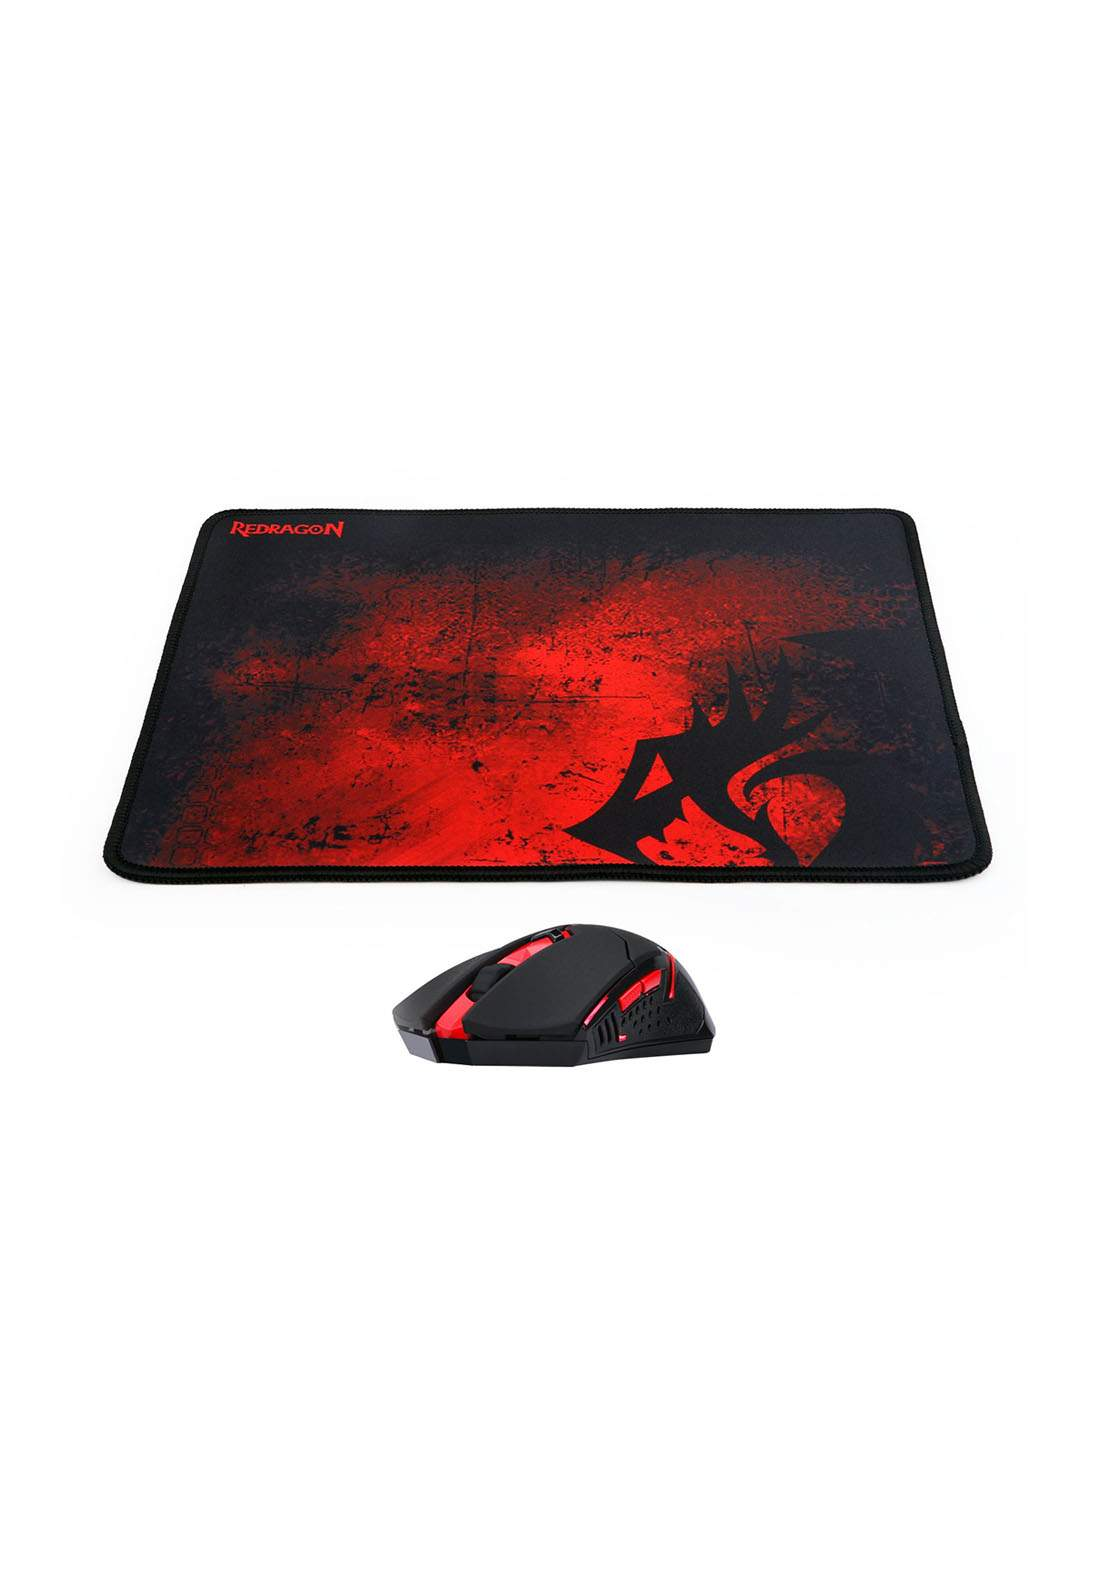 Redragon M601-WL-BA Wireless Gaming Mouse and Mouse Pad Combo - Black ماوس